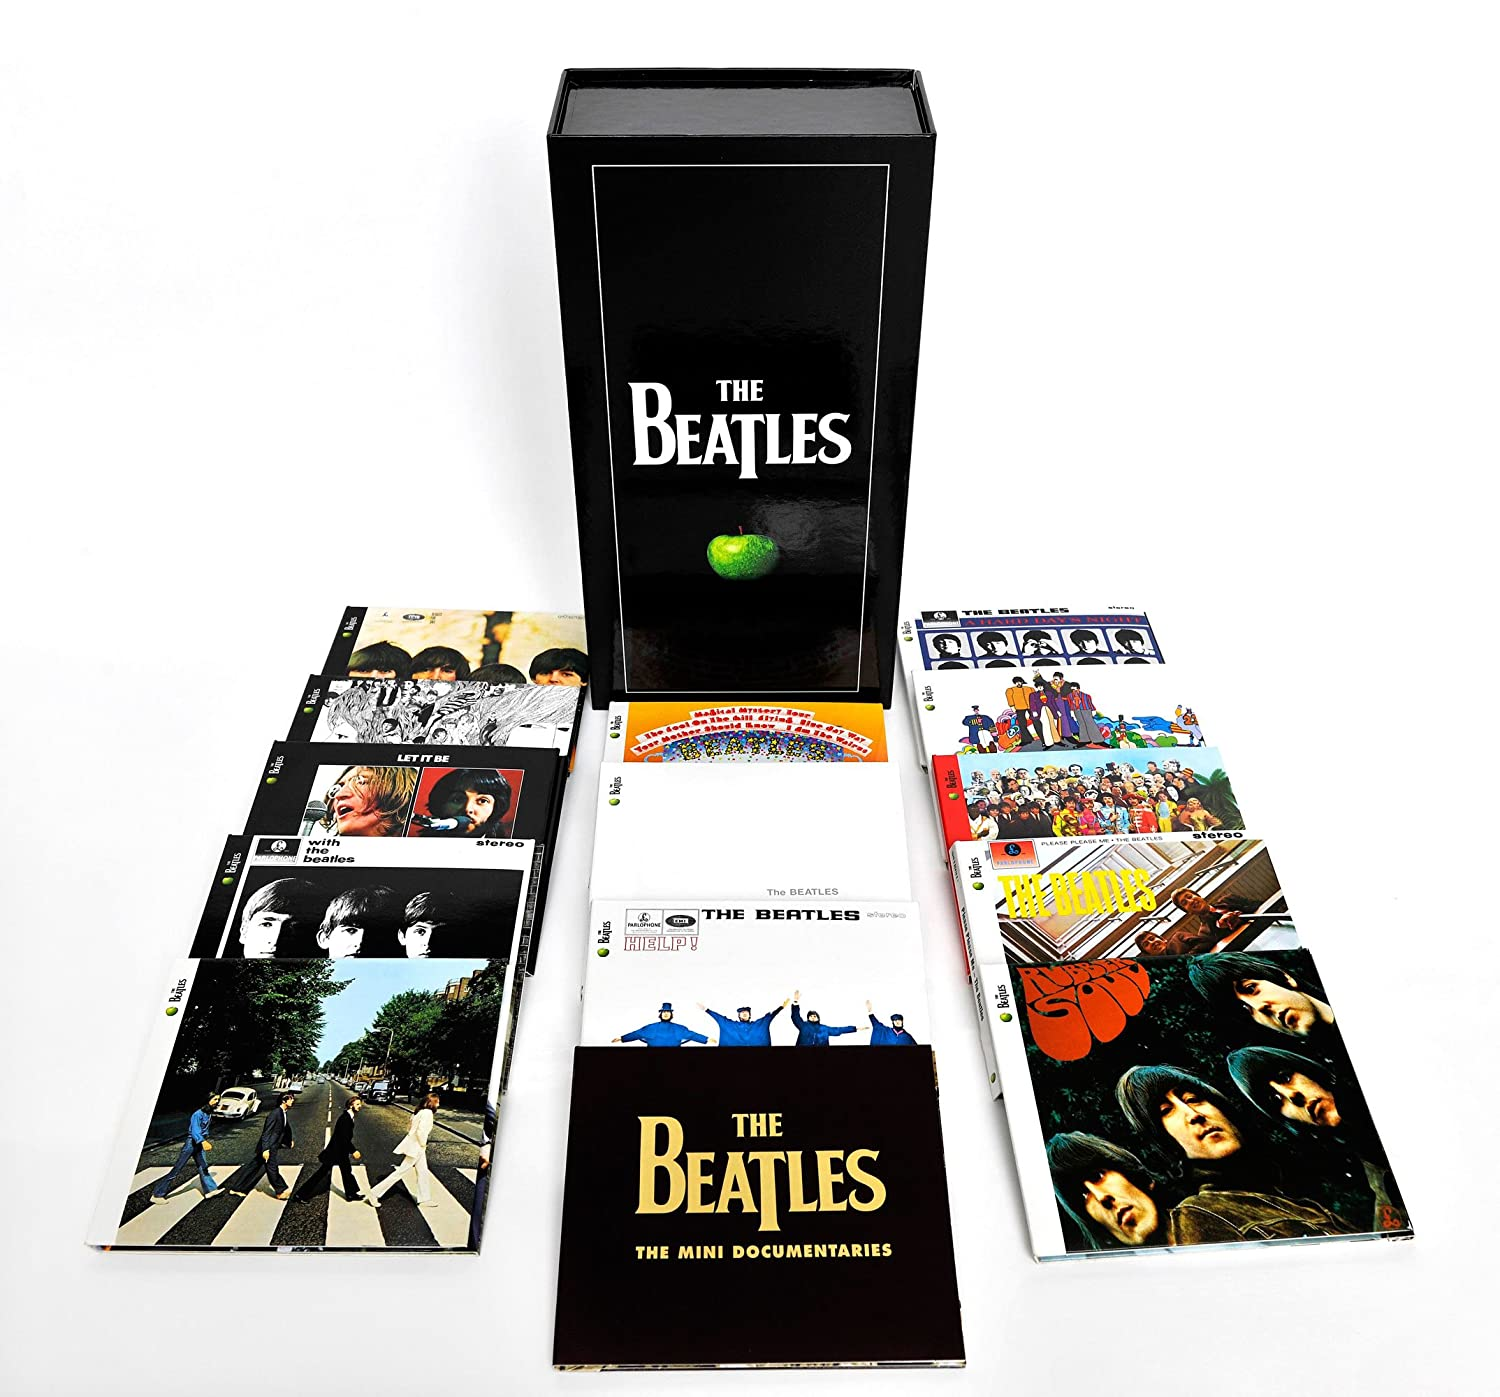 The Beatles: The Original Studio Recordings